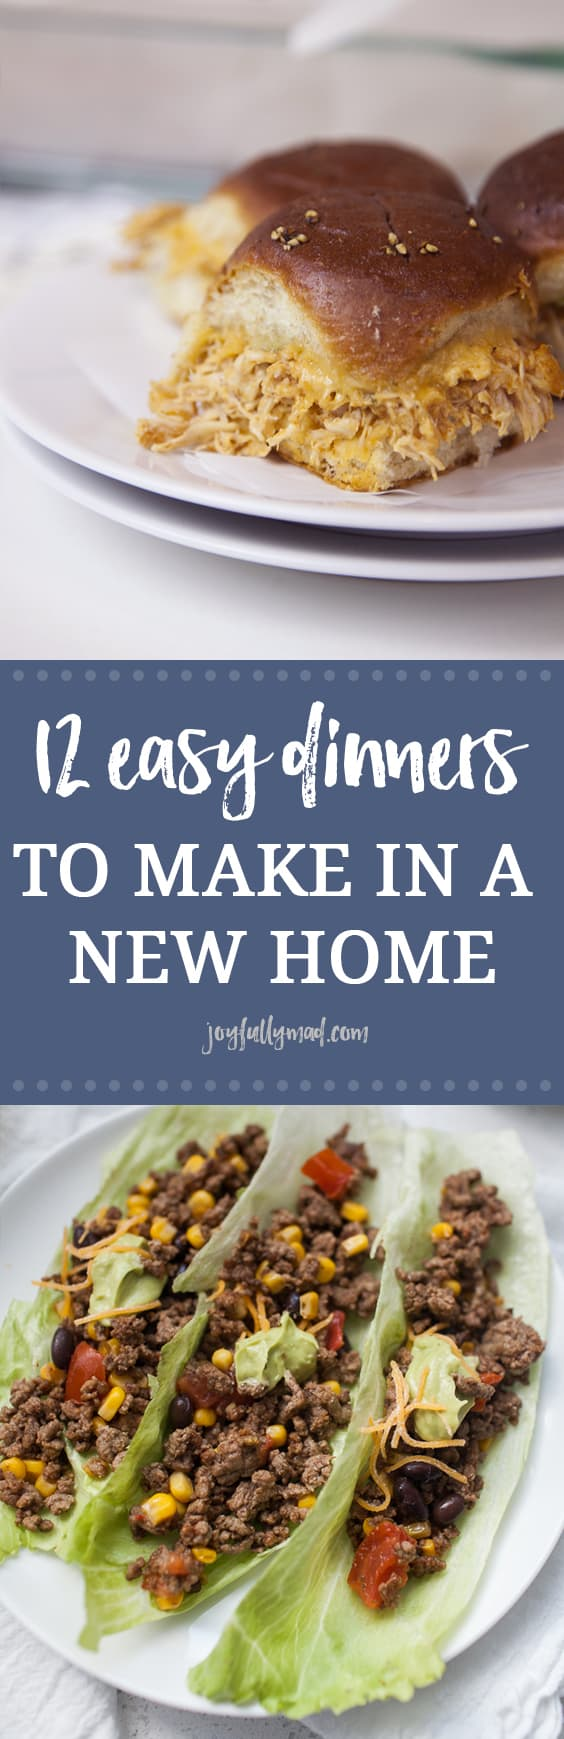 12 Family Dinner Recipes for a New Home - A Joyfully Mad Kitchen